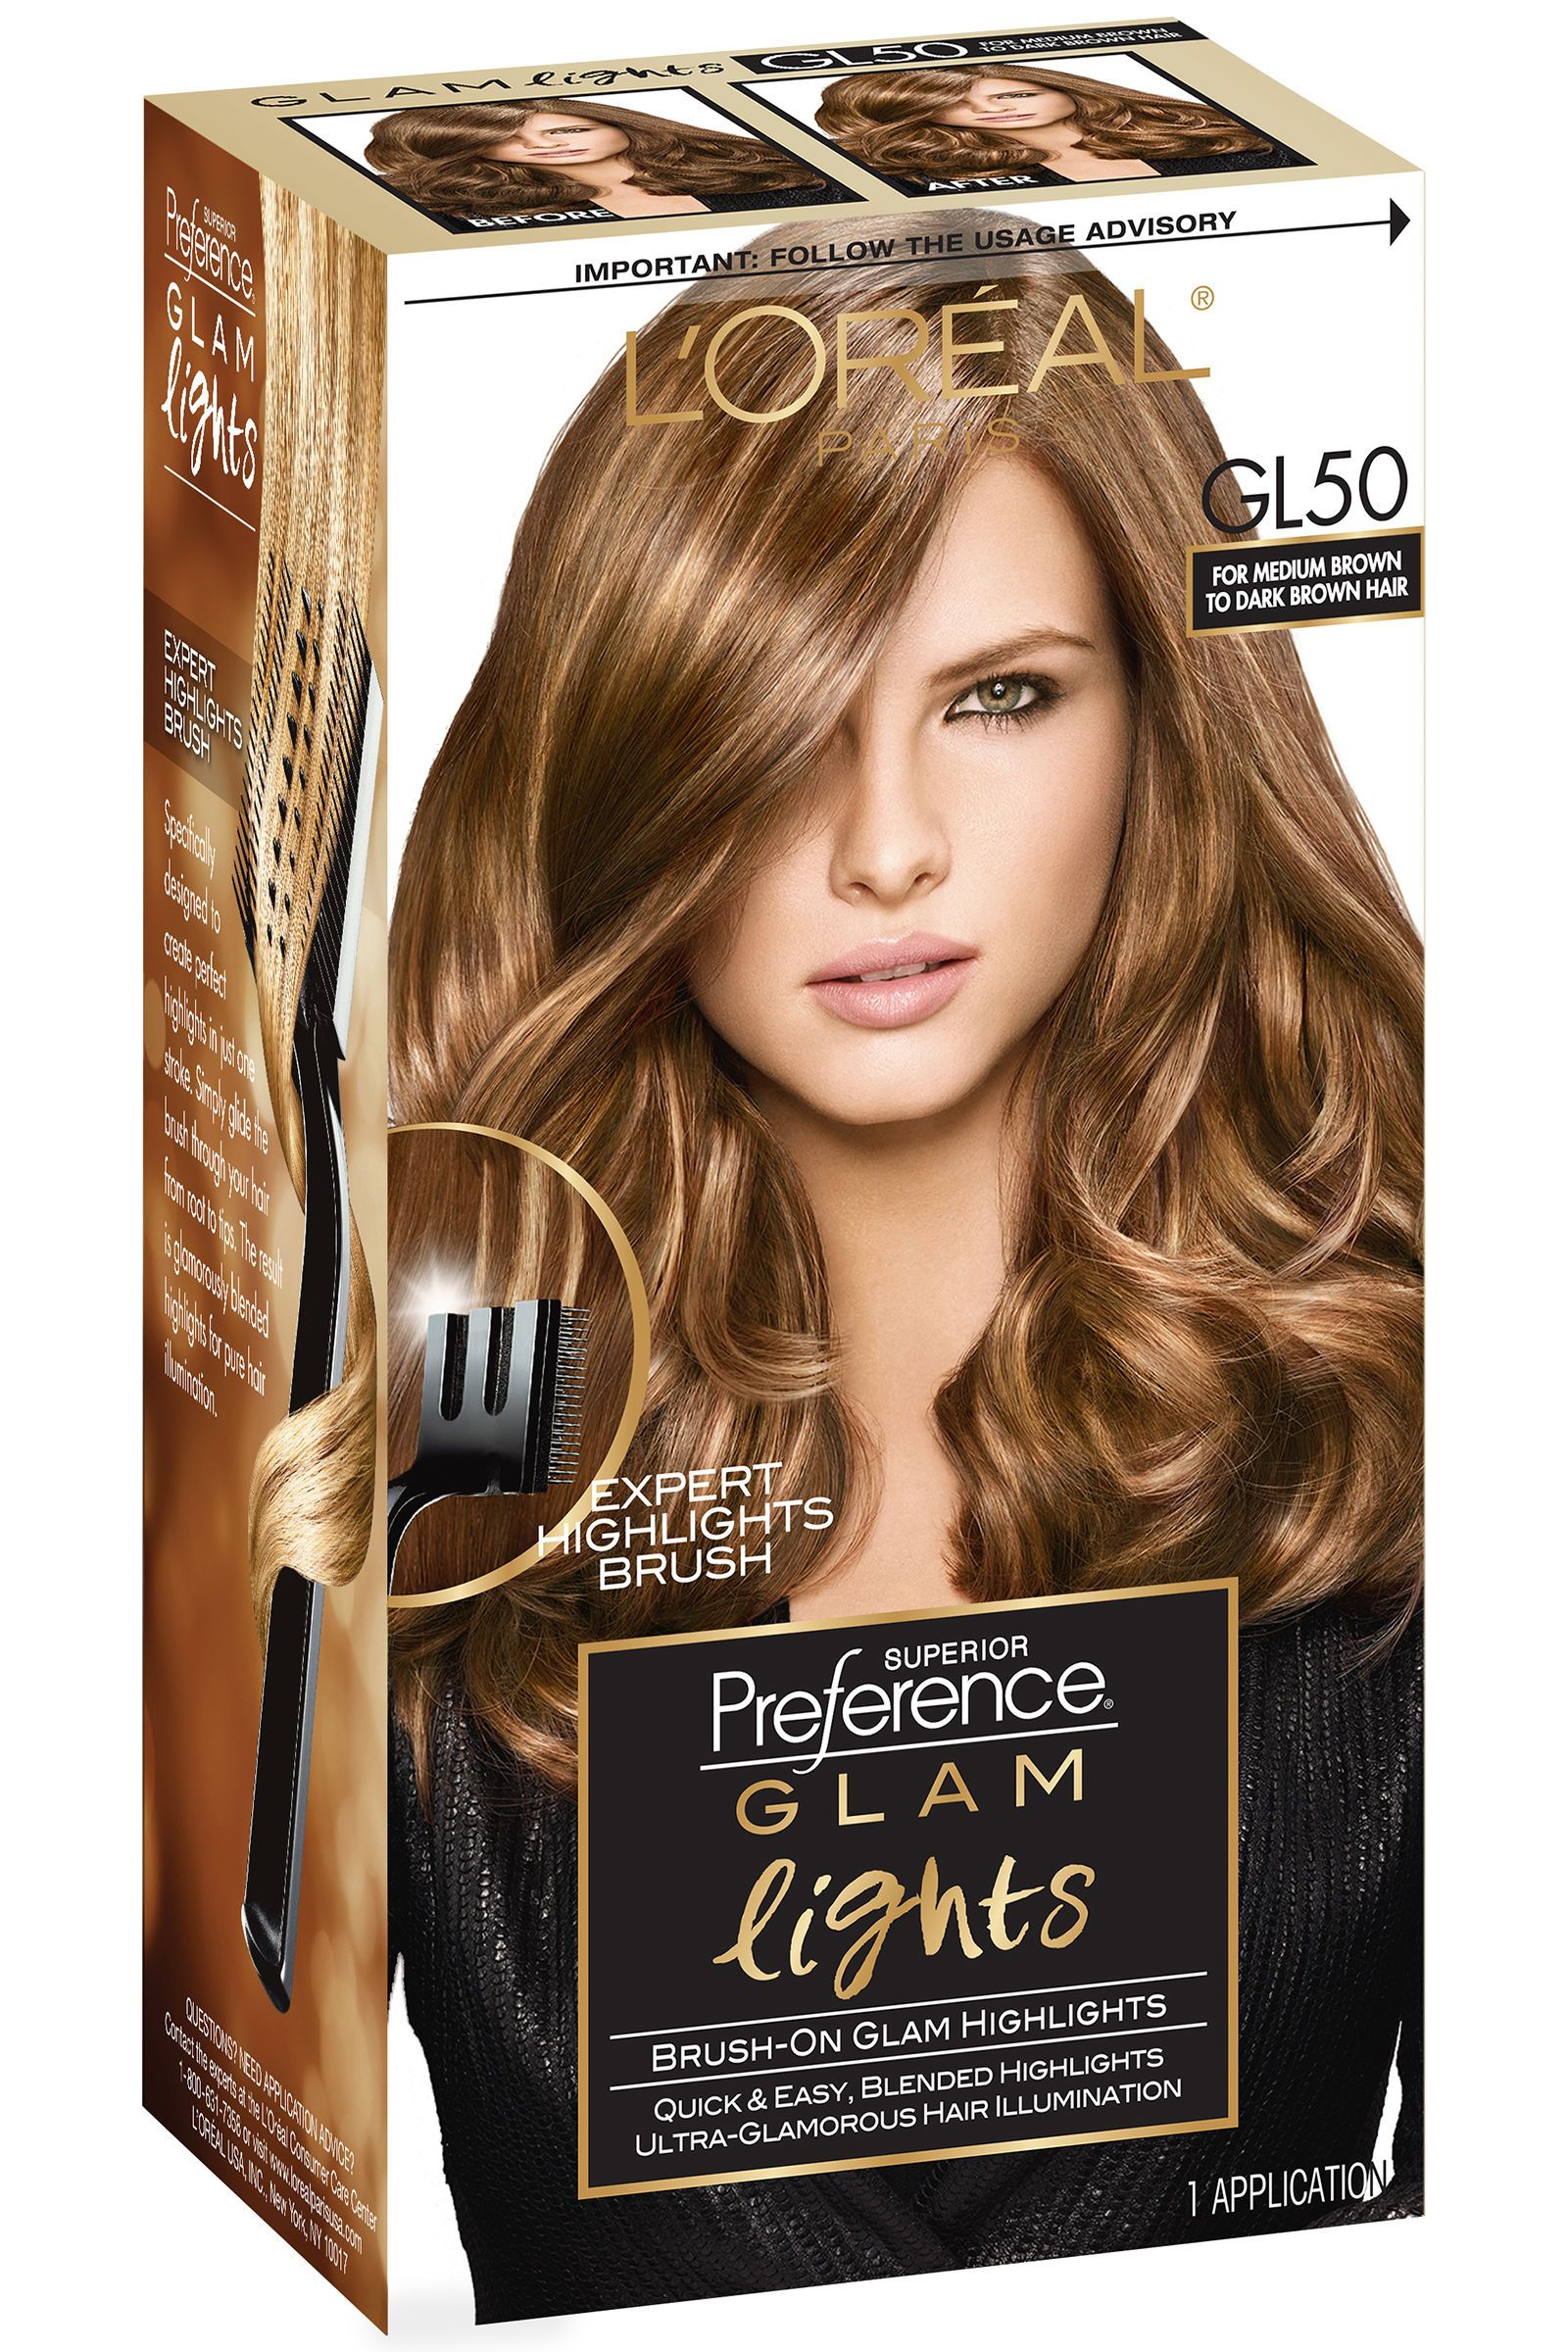 The Best At Home Hair Color Kits That Look Natural And Last A Long